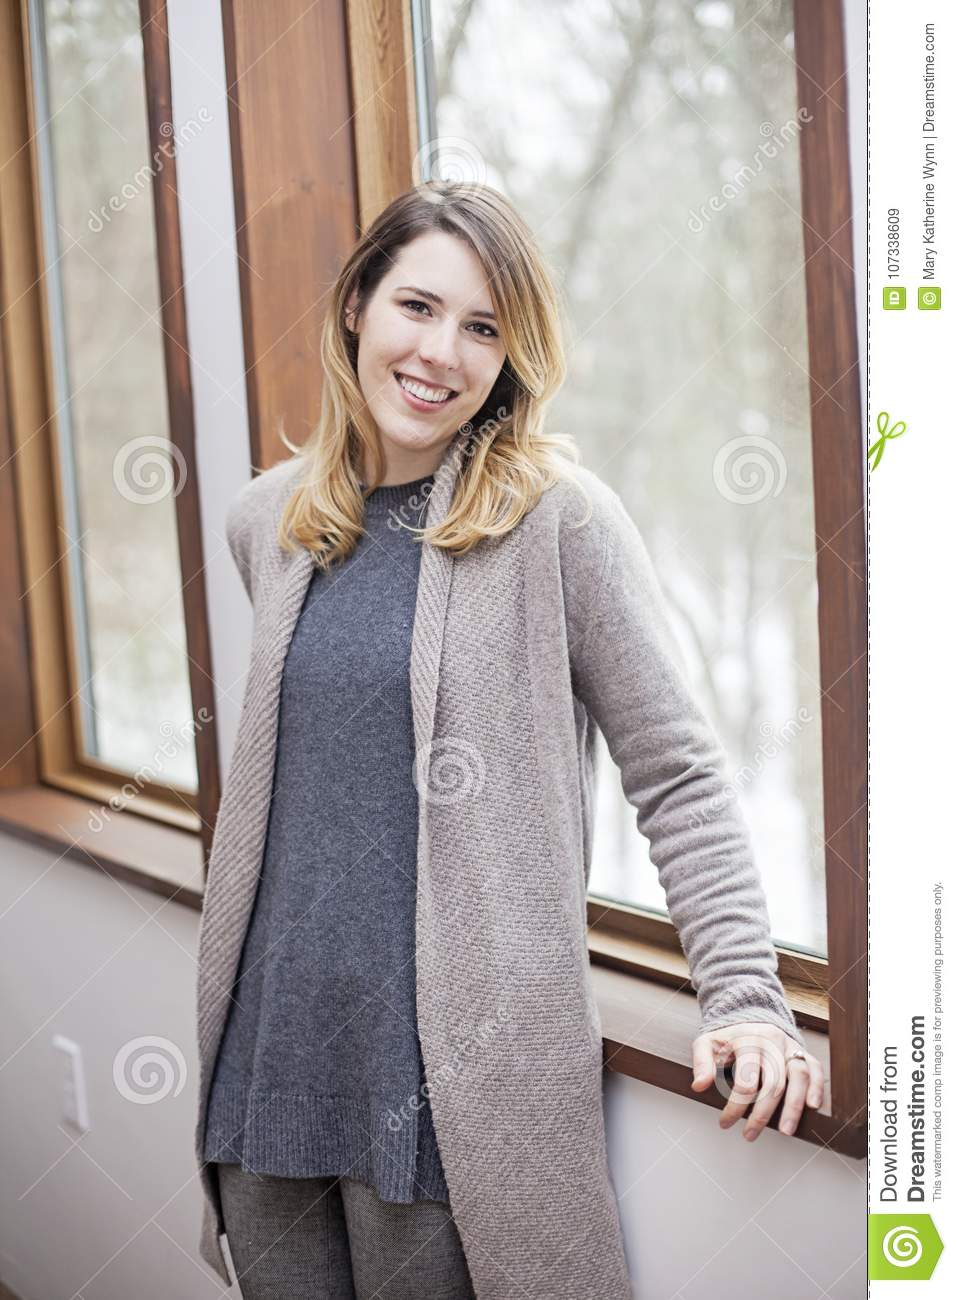 Happy woman at home by window in winter